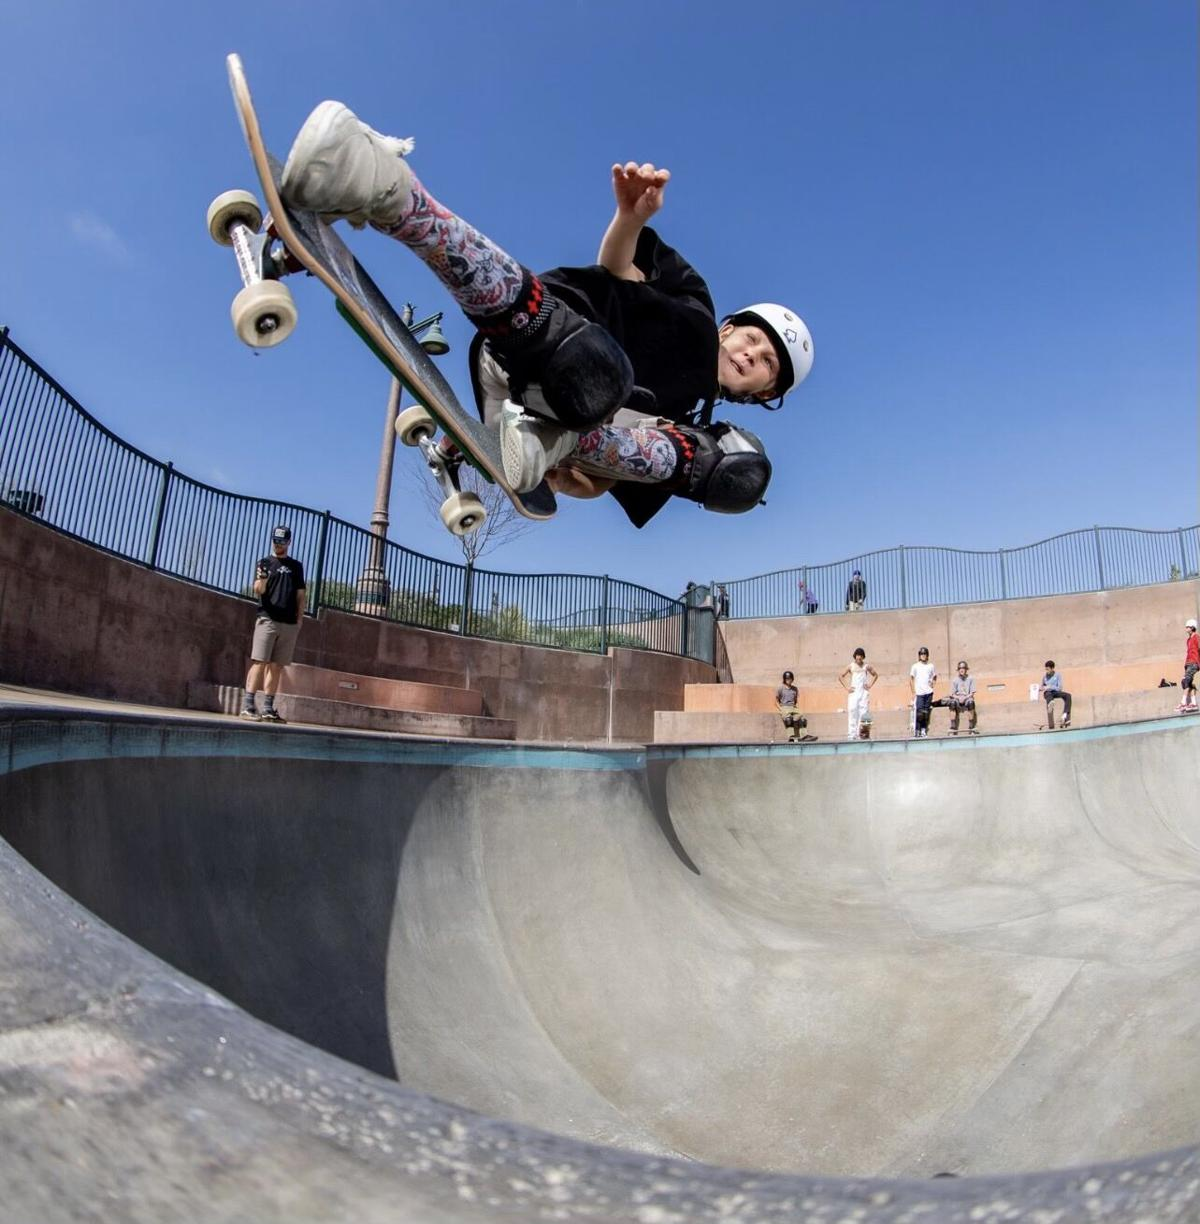 Meet Ollie Graves, the 11-year-old Ridgway skateboarder who's quickly become a name to watch